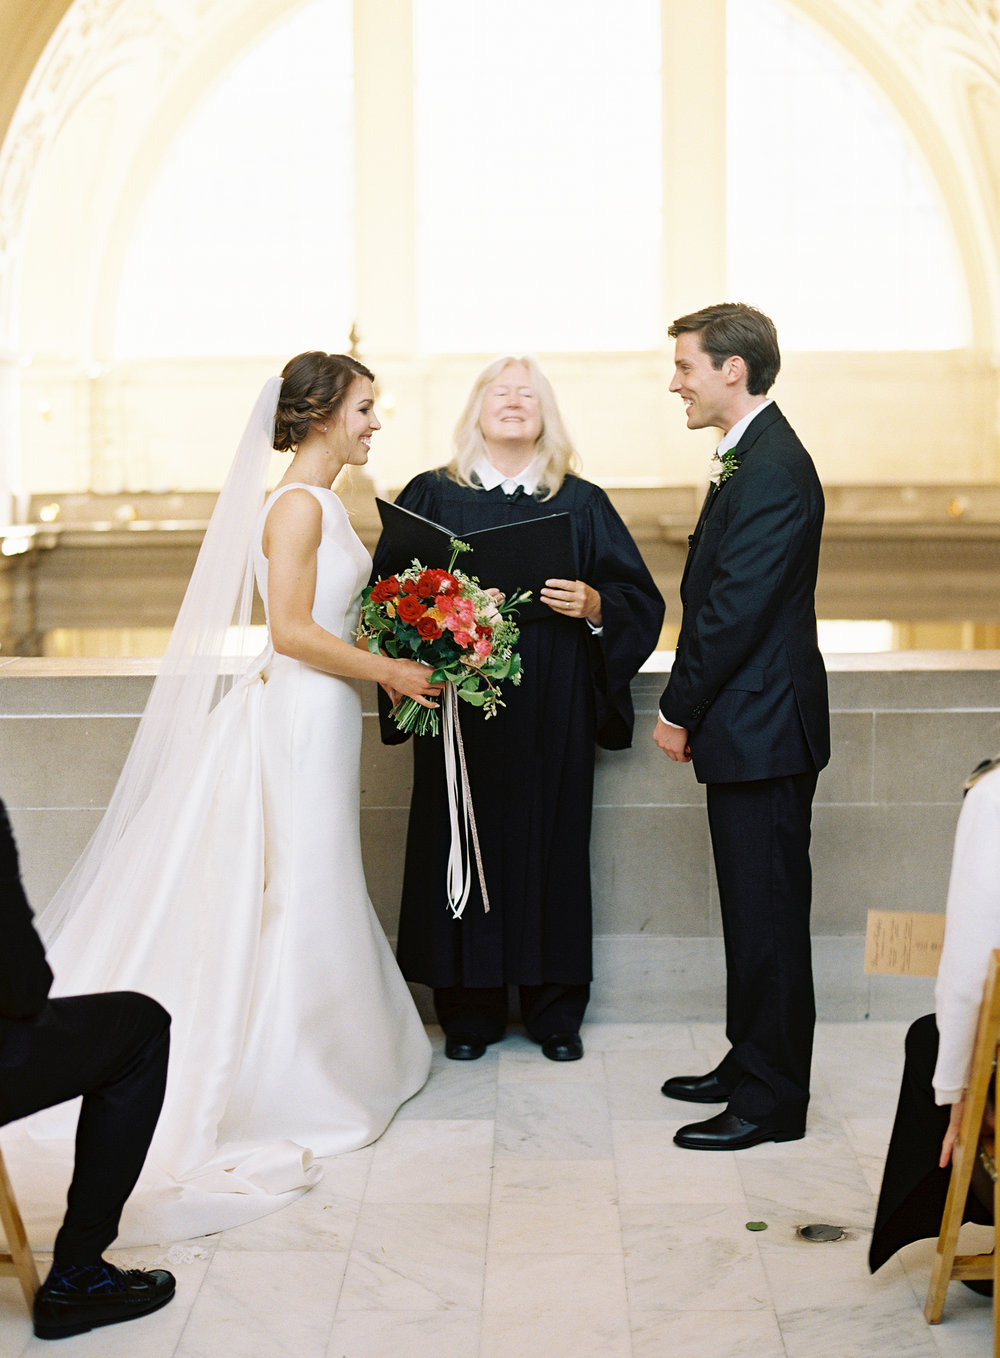 Meghan Mehan Photography - California Wedding Photographer | San Francisco City Hall Wedding 089.jpg